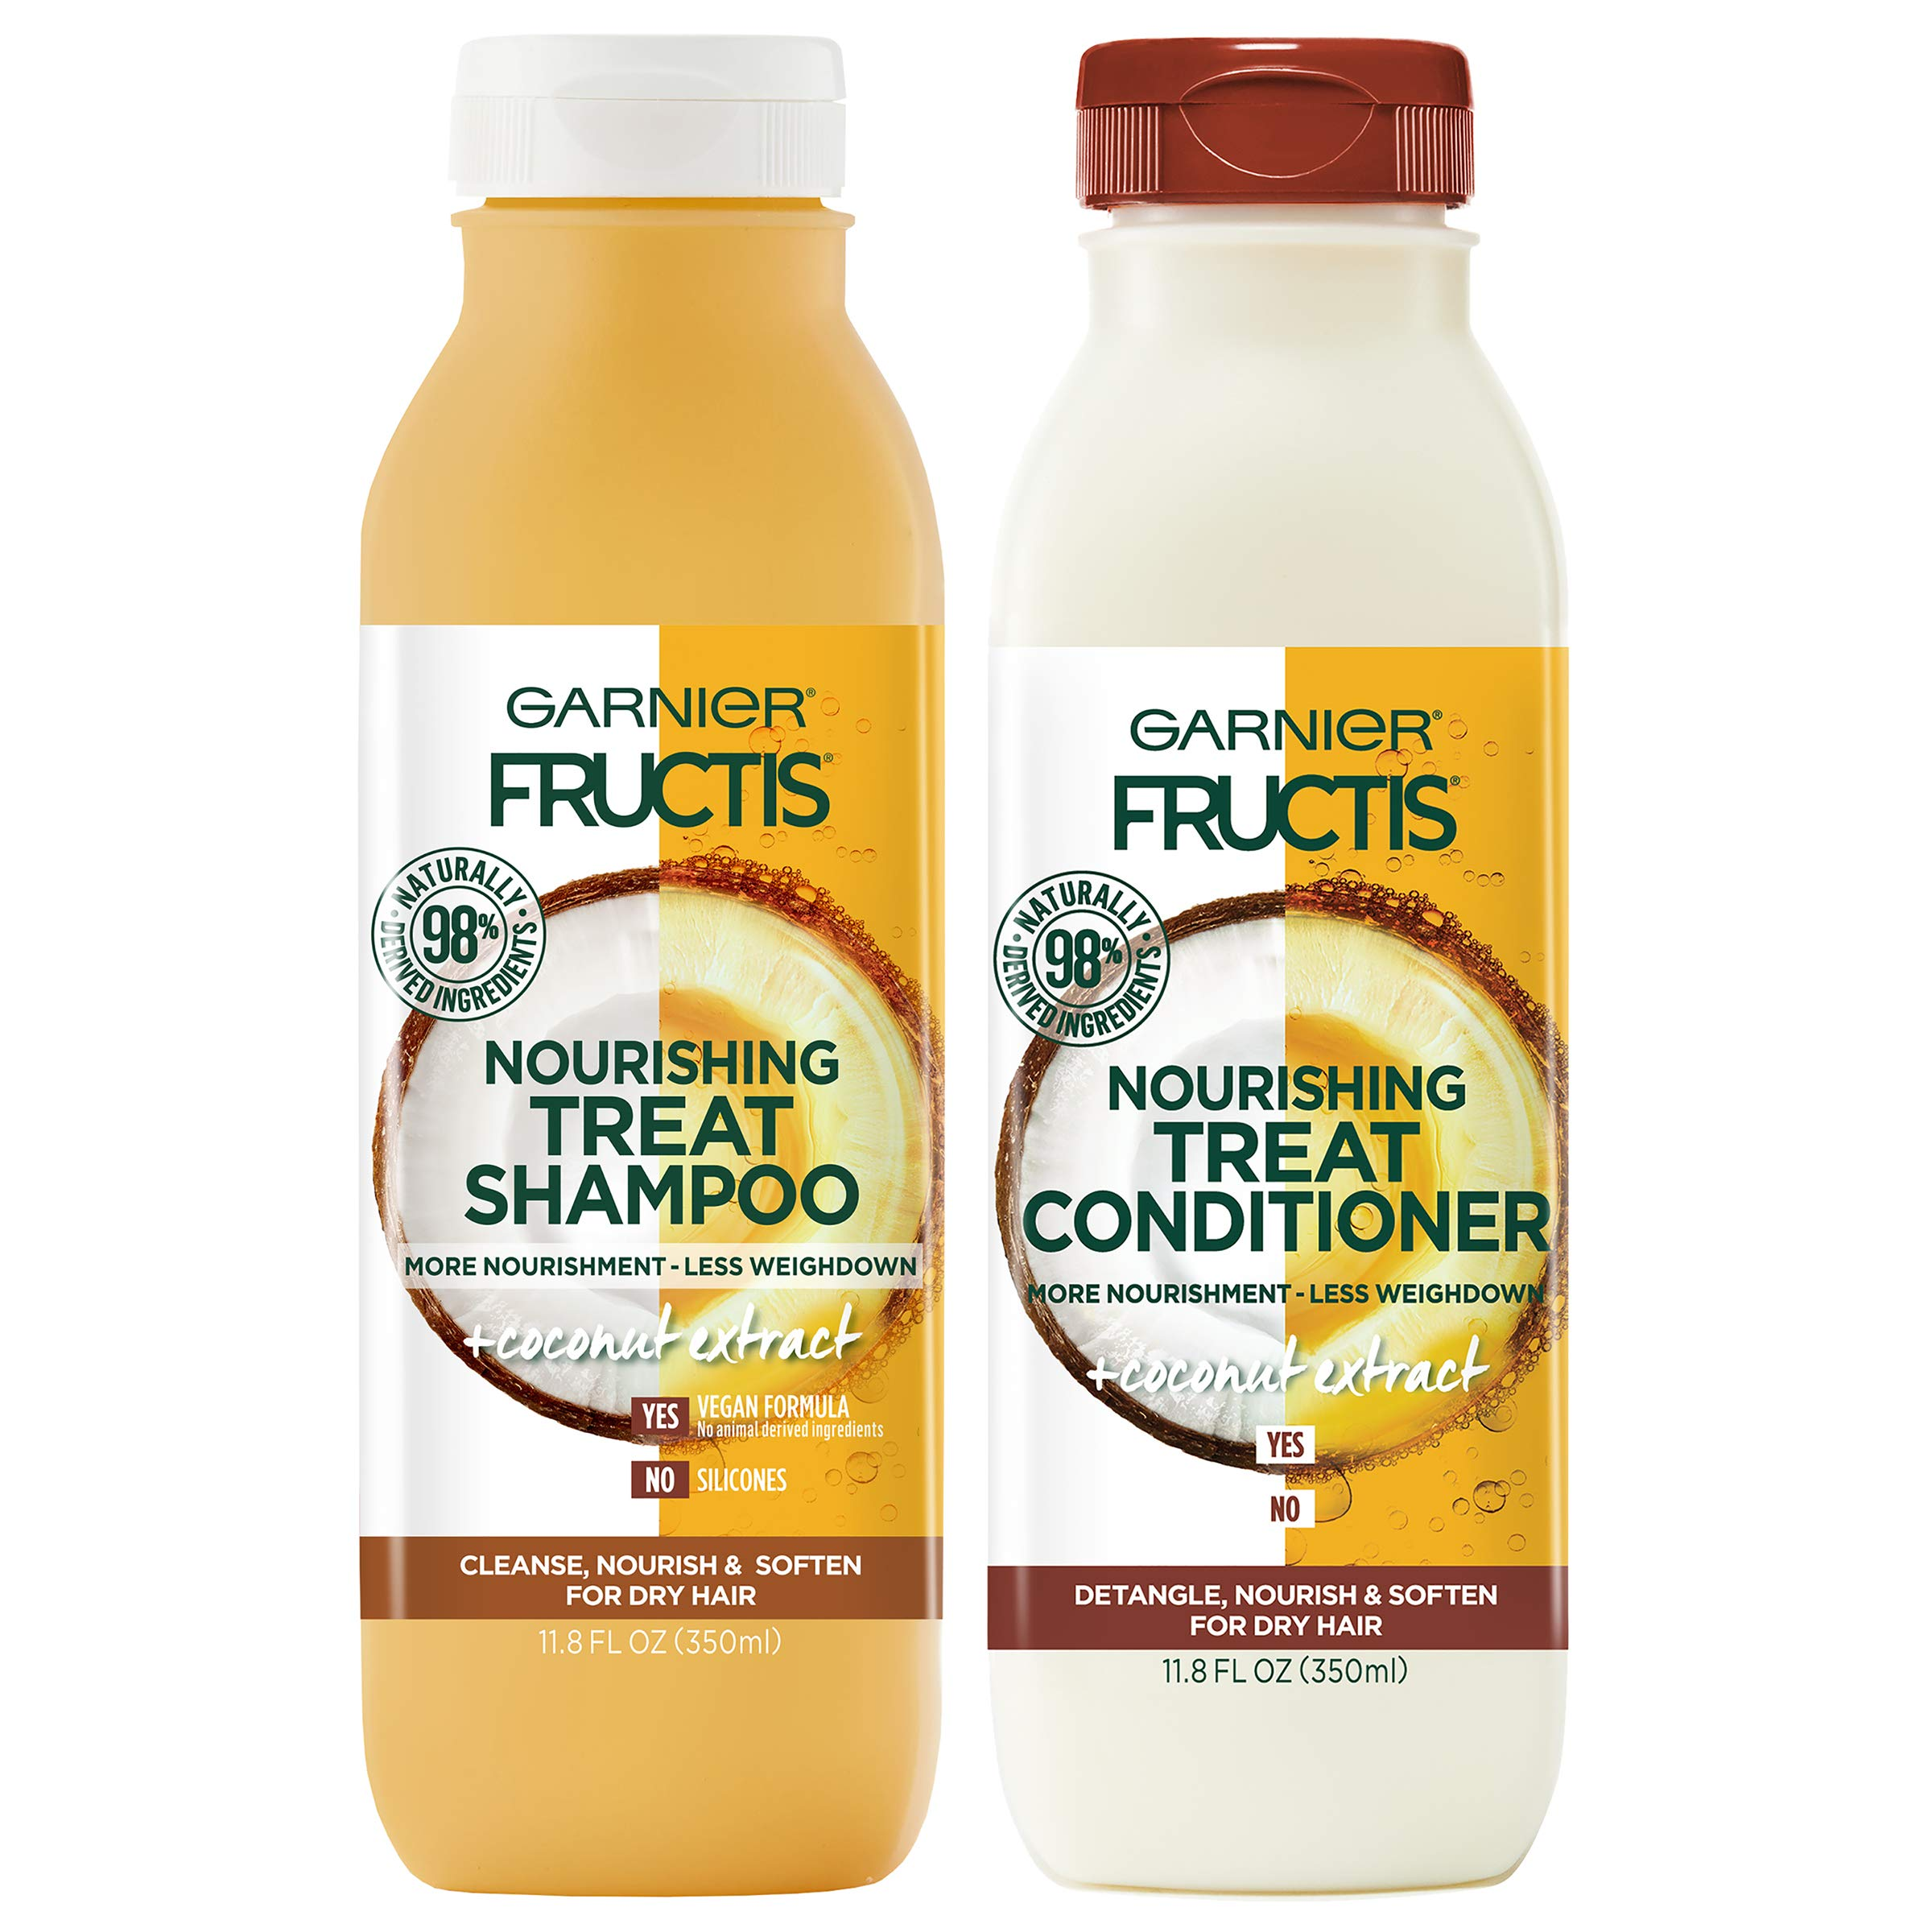 Garnier Fructis Nourishing Treat Shampoo and Conditioner, 98 Percent Naturally Derived Ingredients, Coconut, Nourish and Soften for Dry Hair, 11.8 oz ea